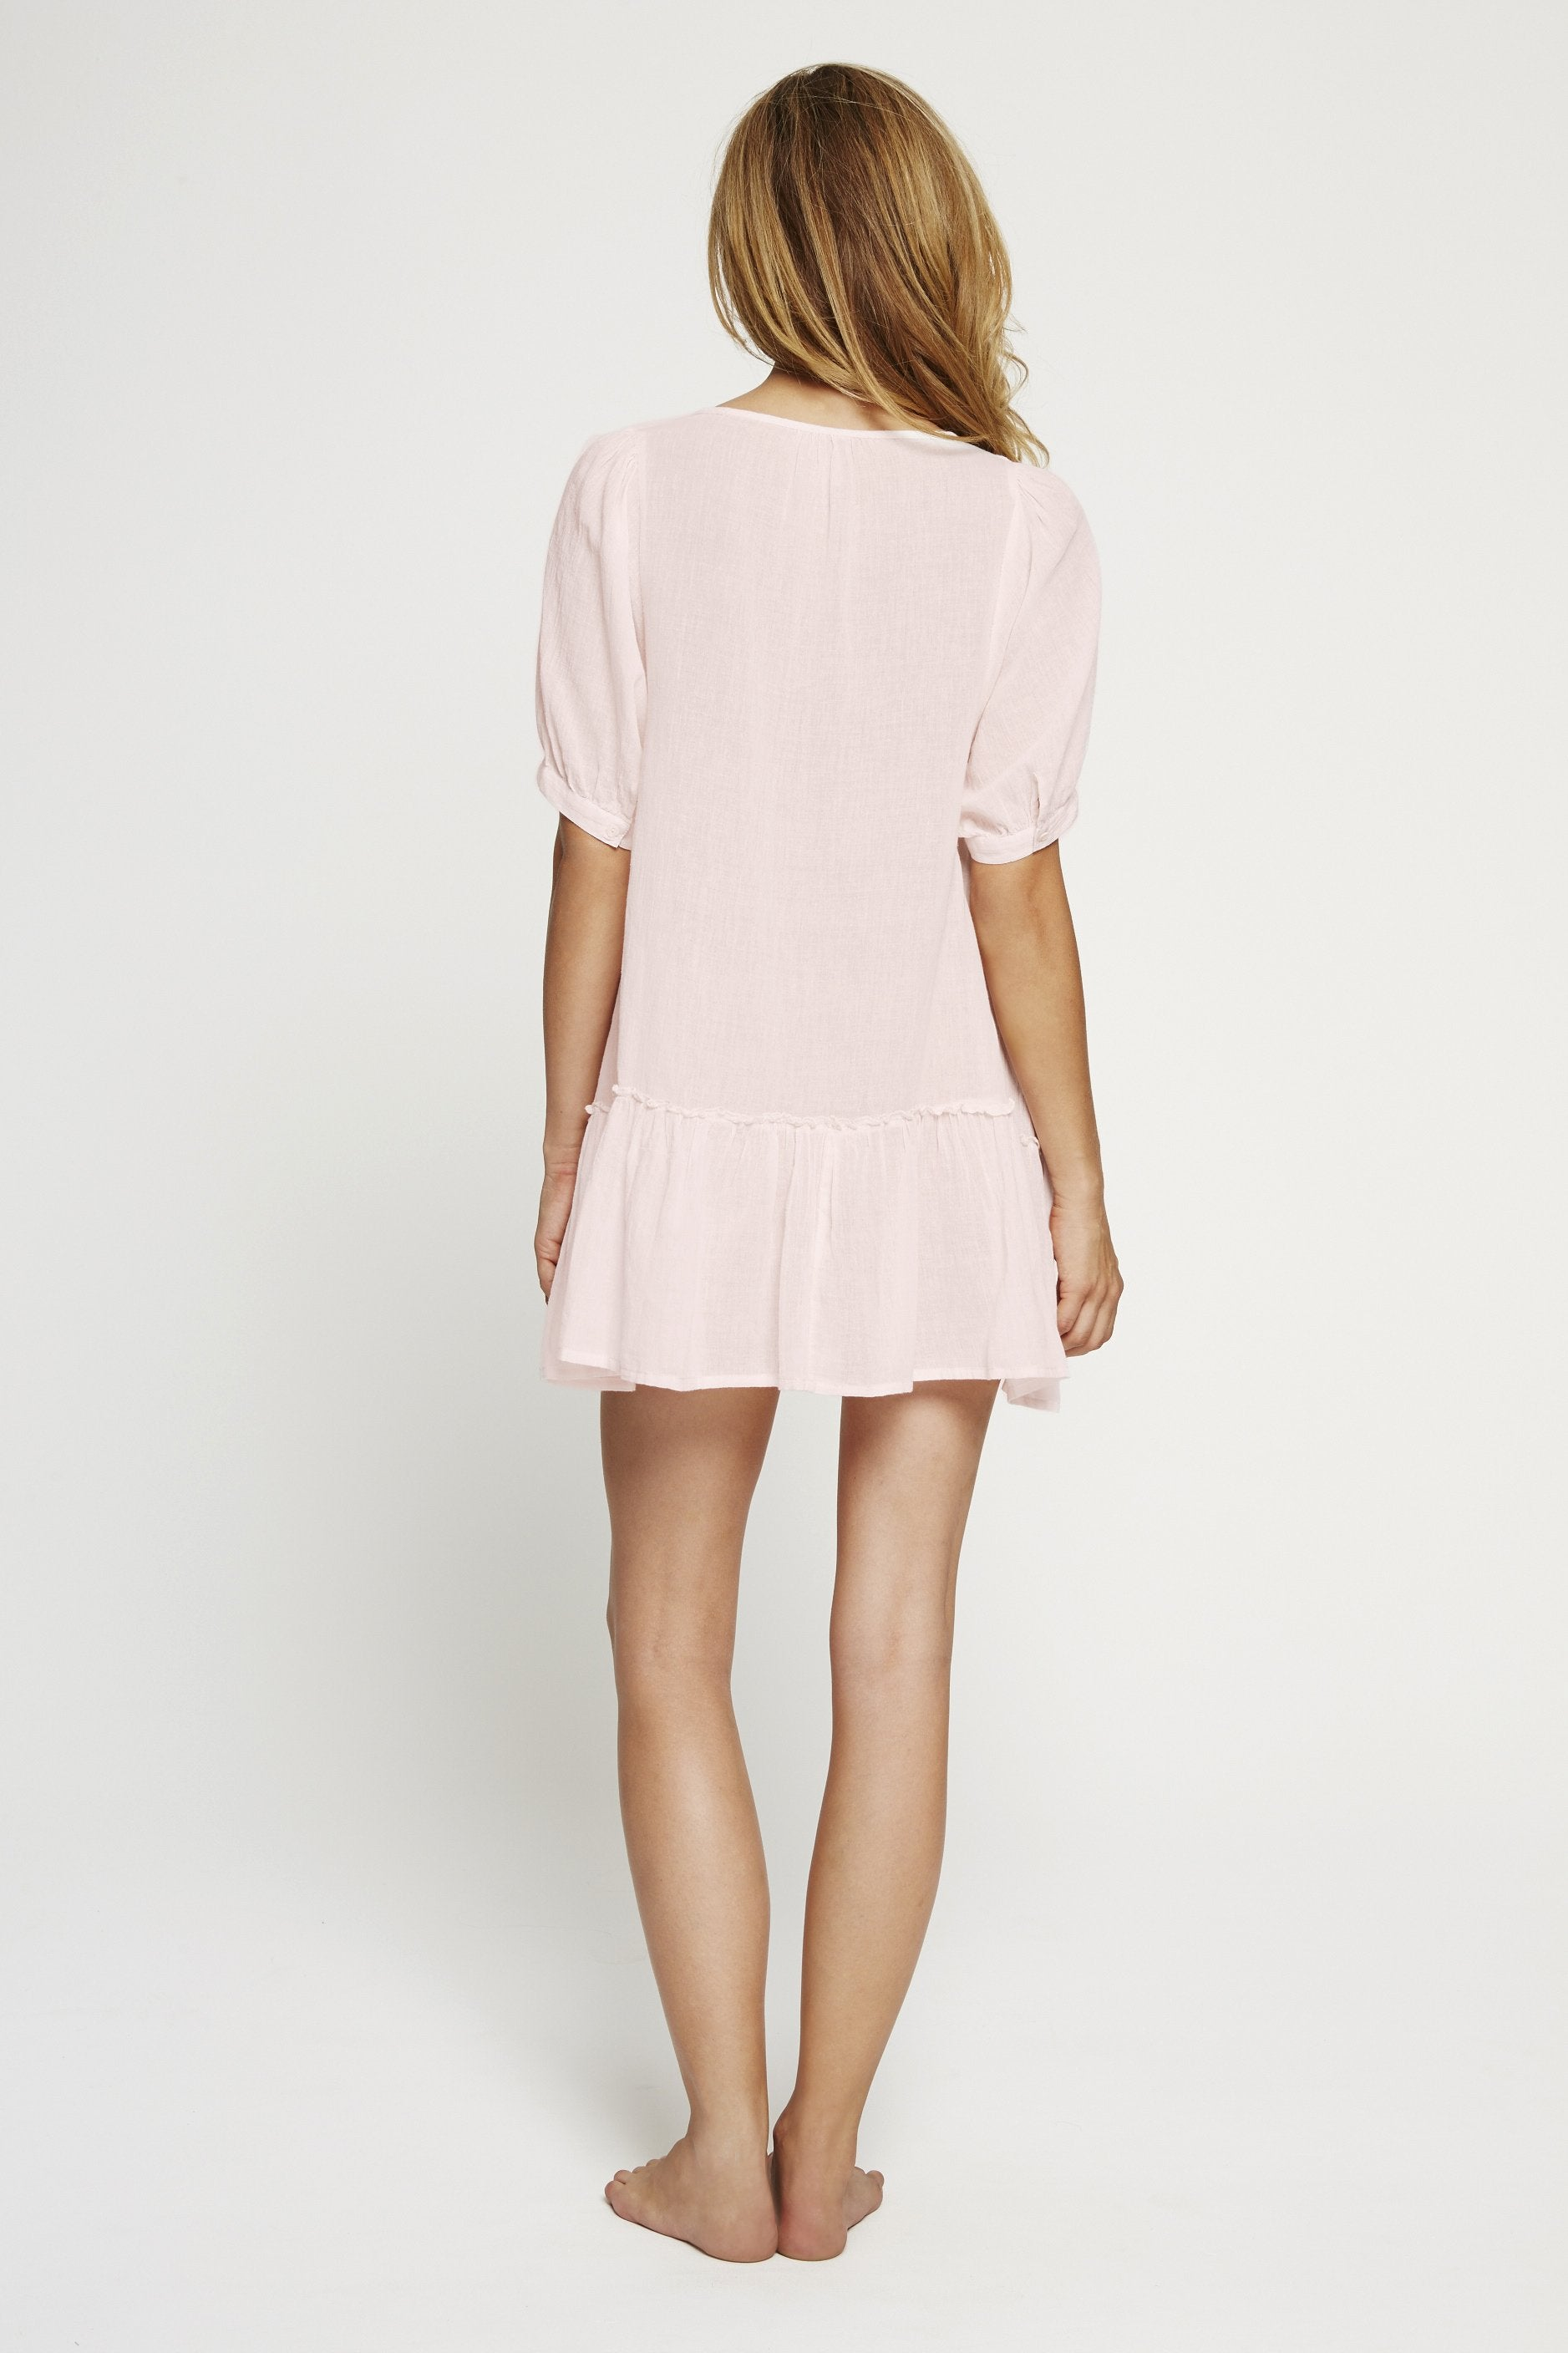 Pintuck_Nightie_Pink_0023-w1